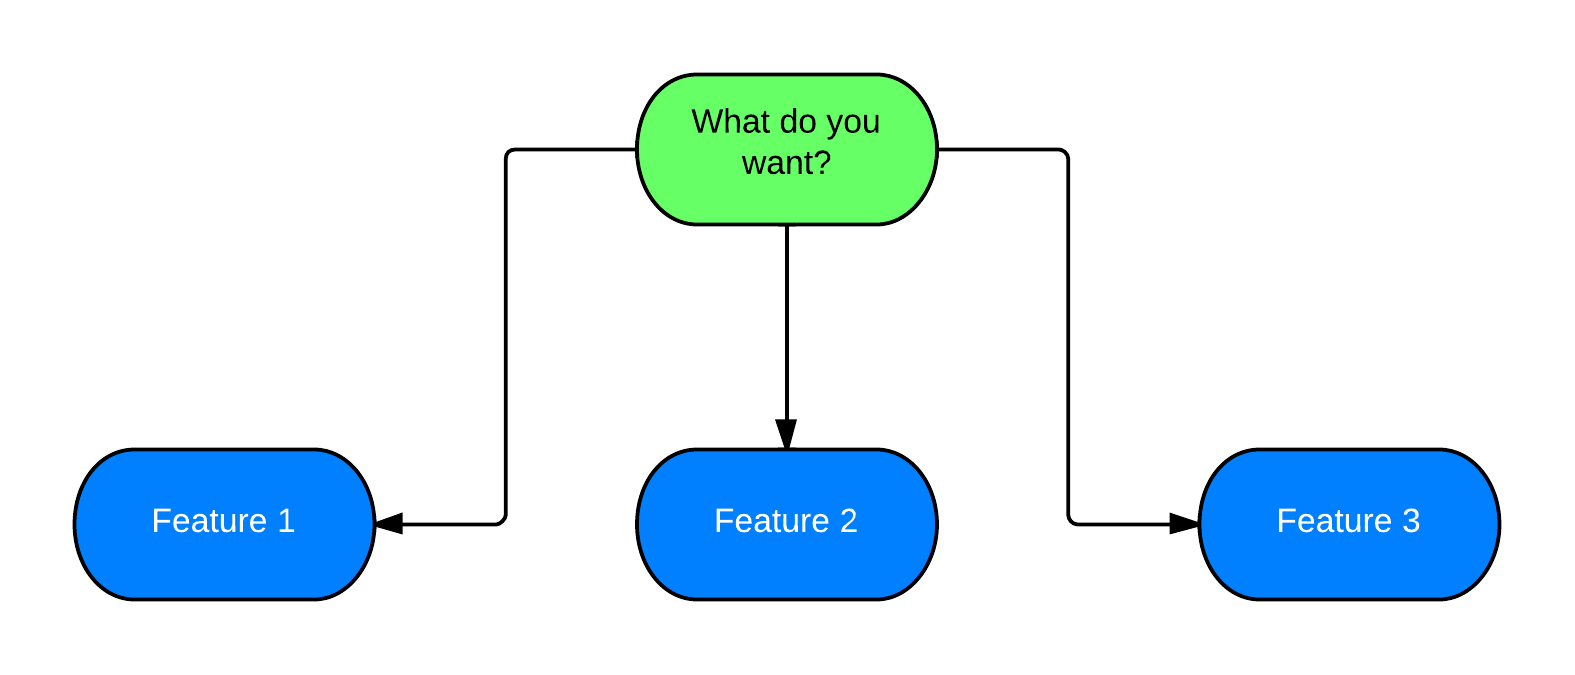 Asking people what they want makes user interviews harder than it should be. And you also can get the wrong insights.